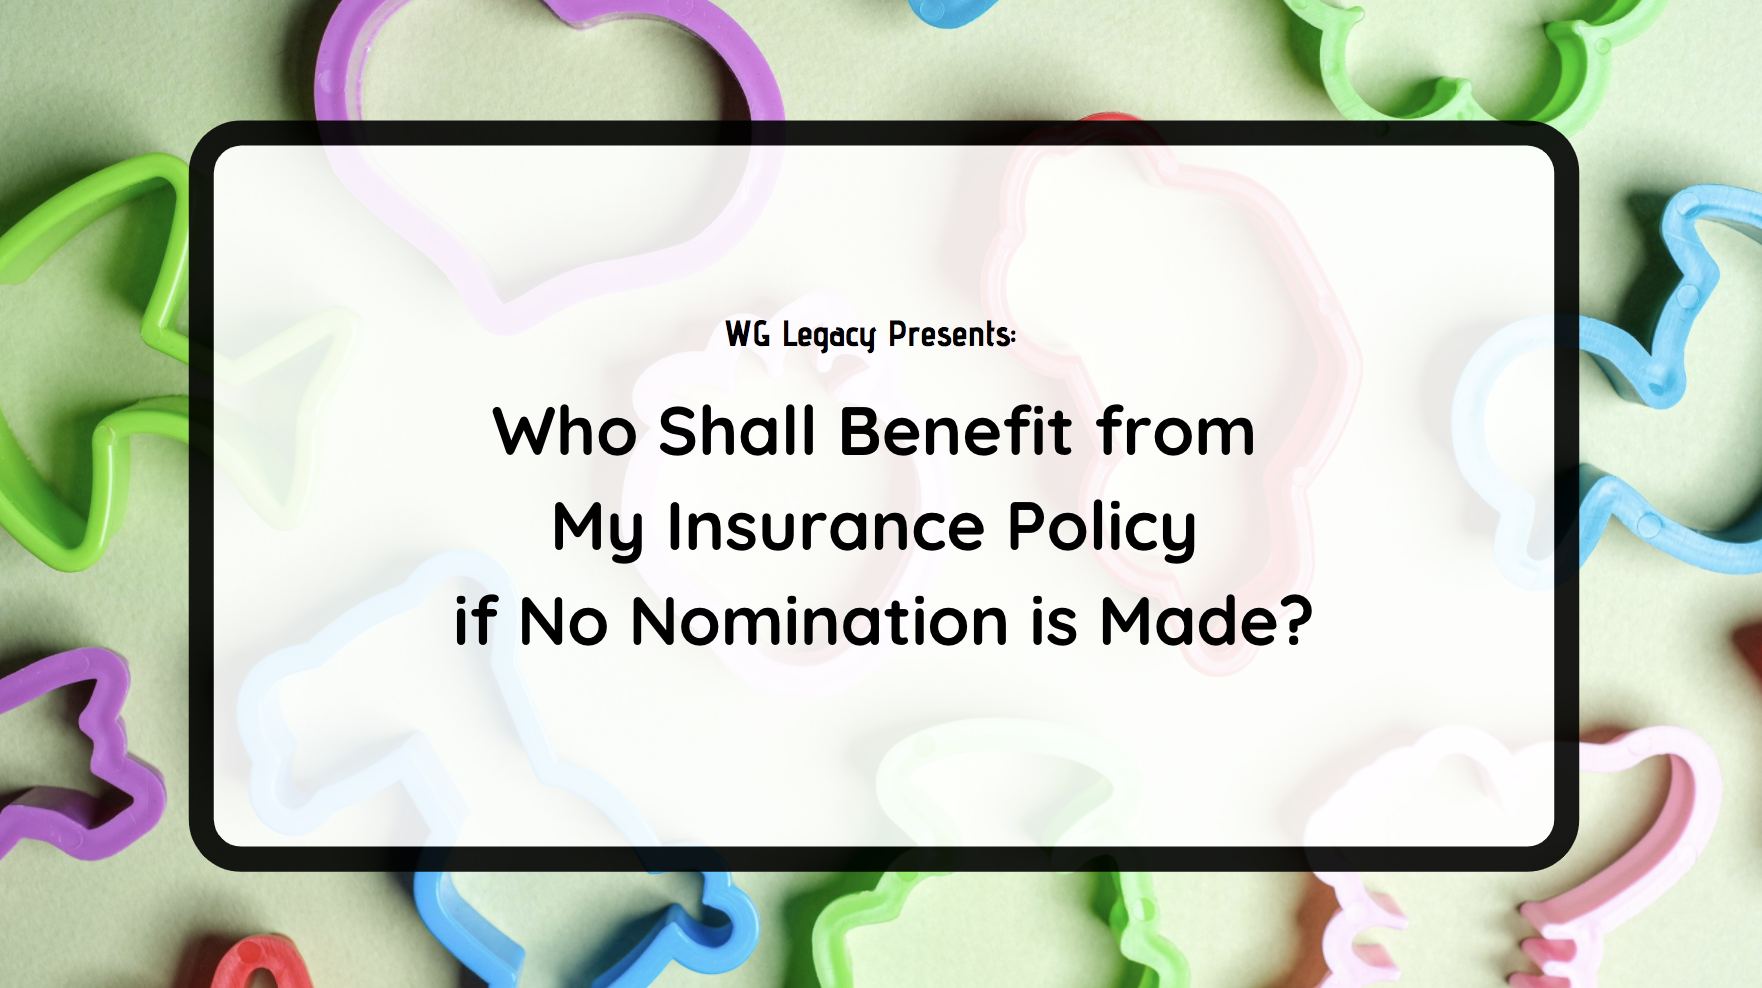 Who Shall Benefit from My Insurance Policy if No Nomination is Made?